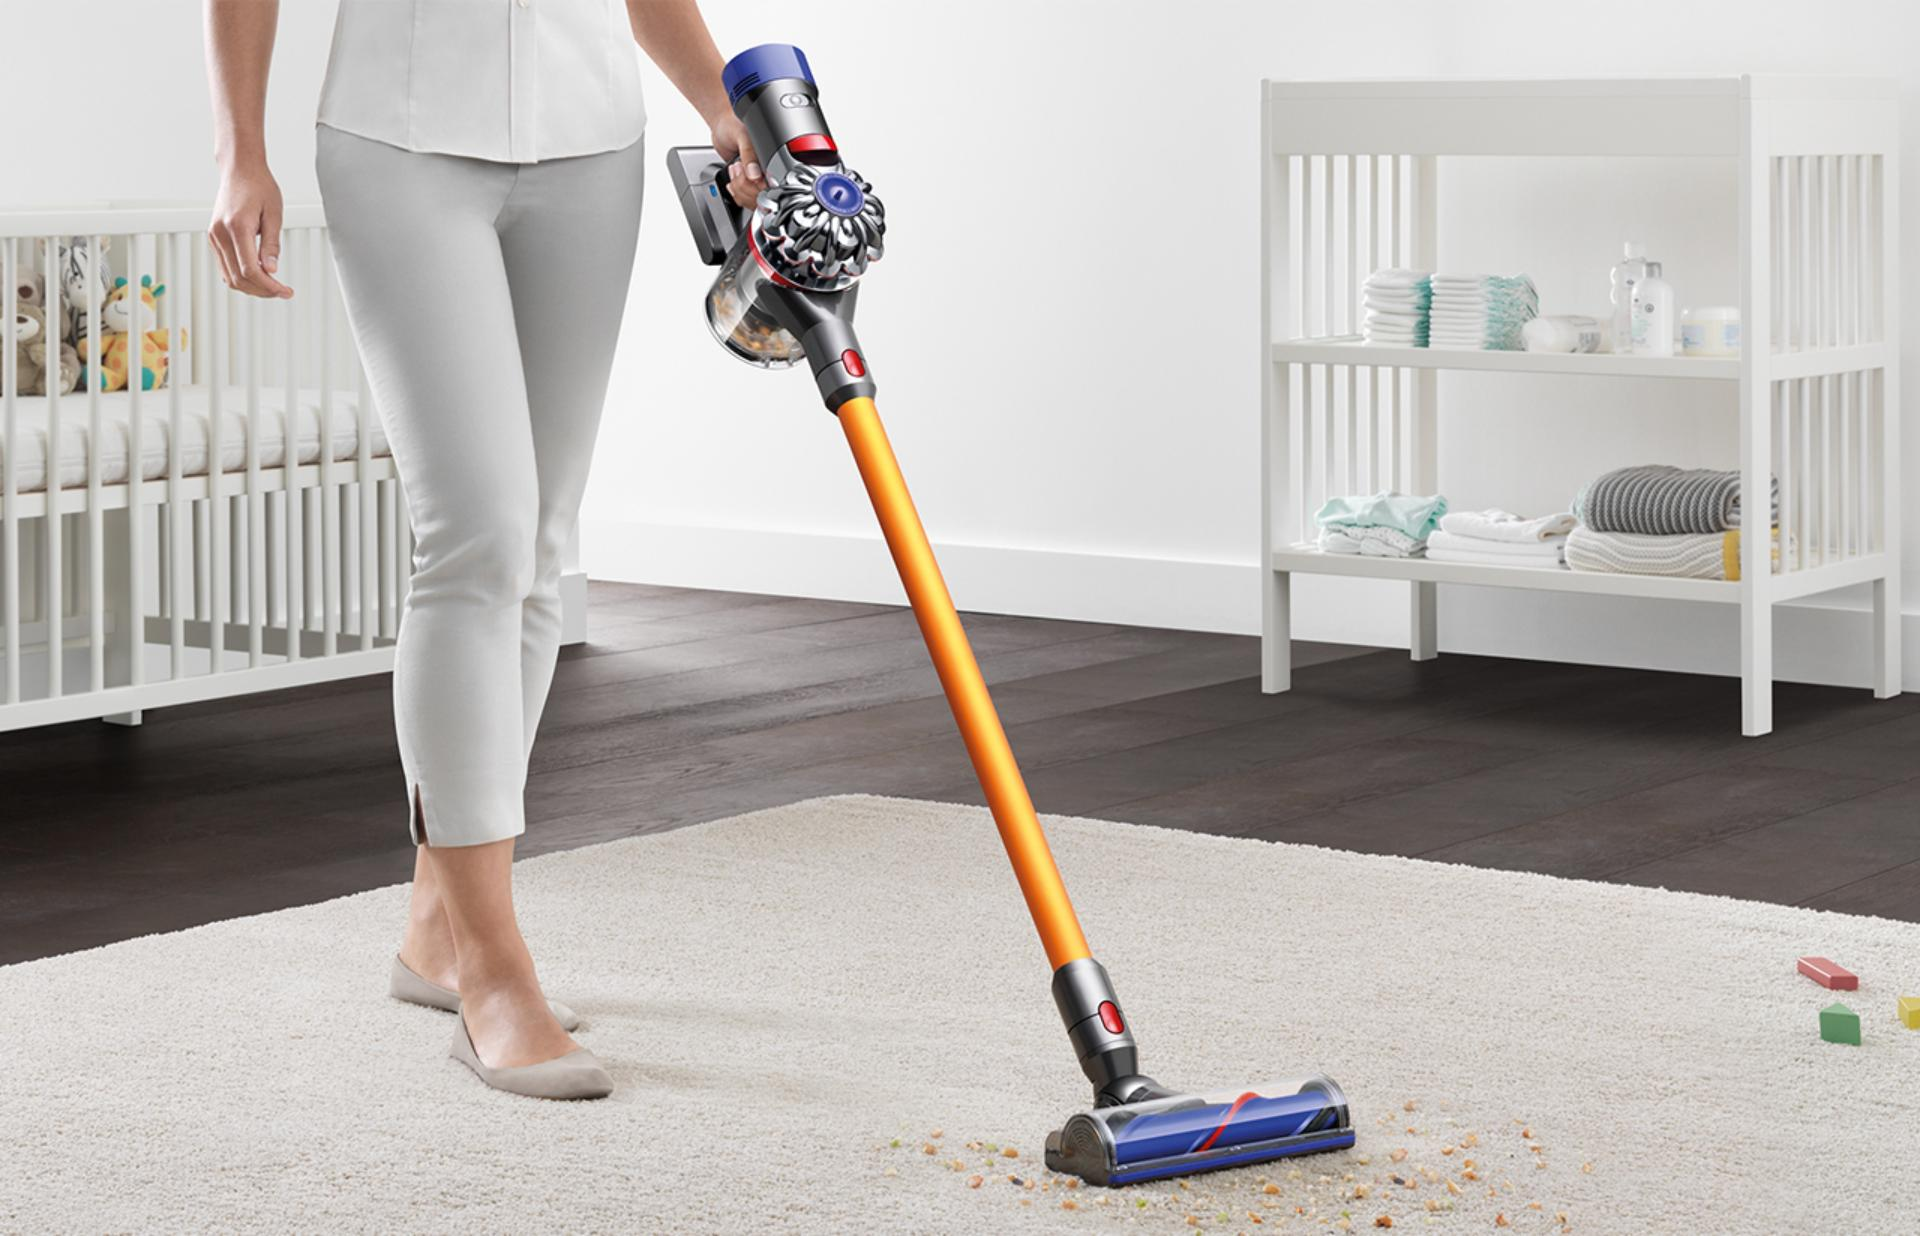 Dyson v8 being used on flooring